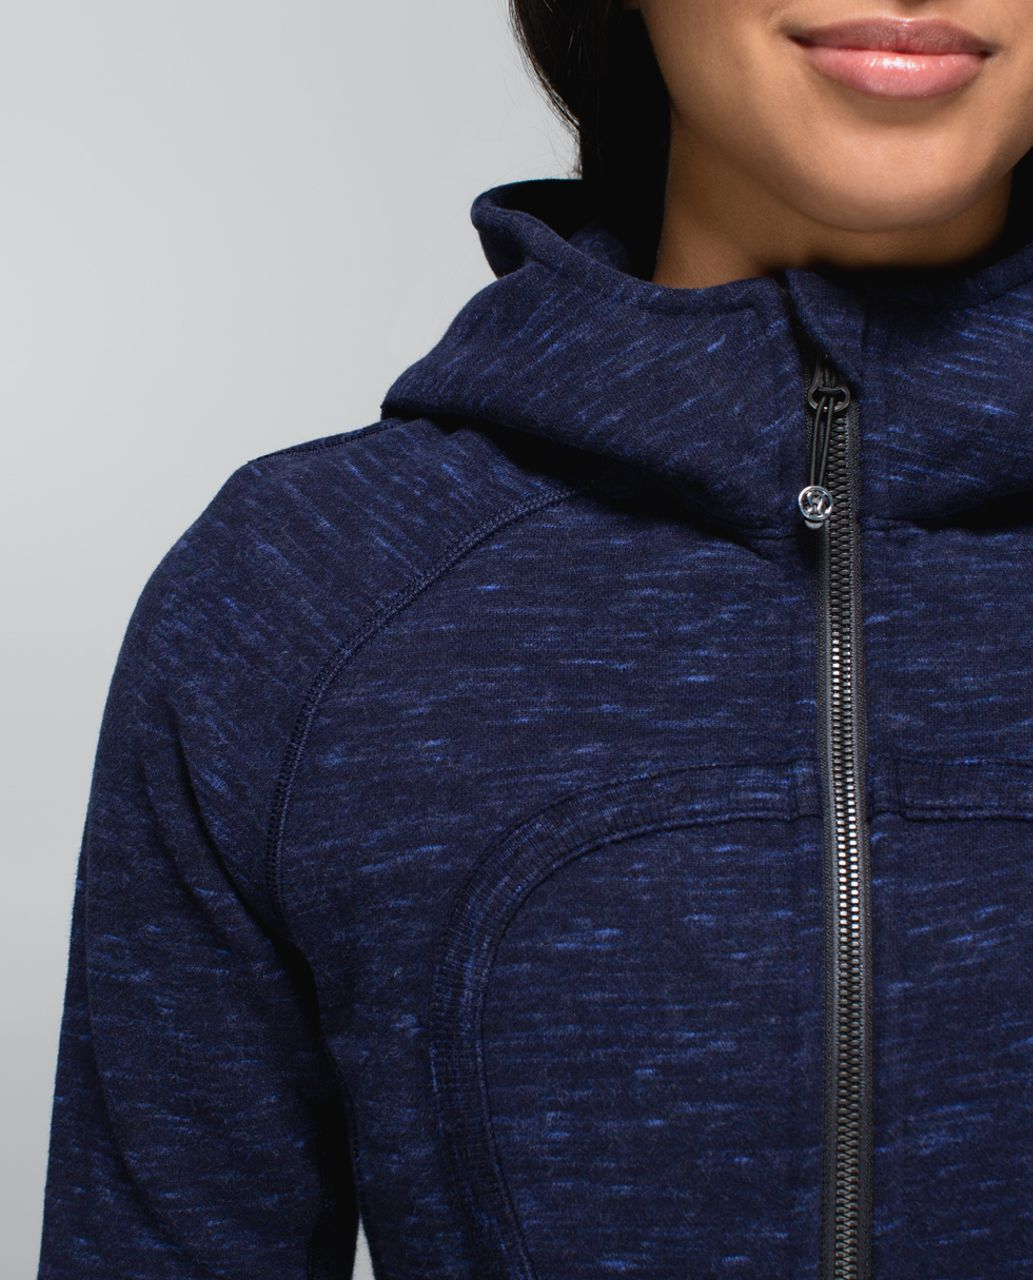 Lululemon Scuba Hoodie II - Heathered Marled Black Grape / Black